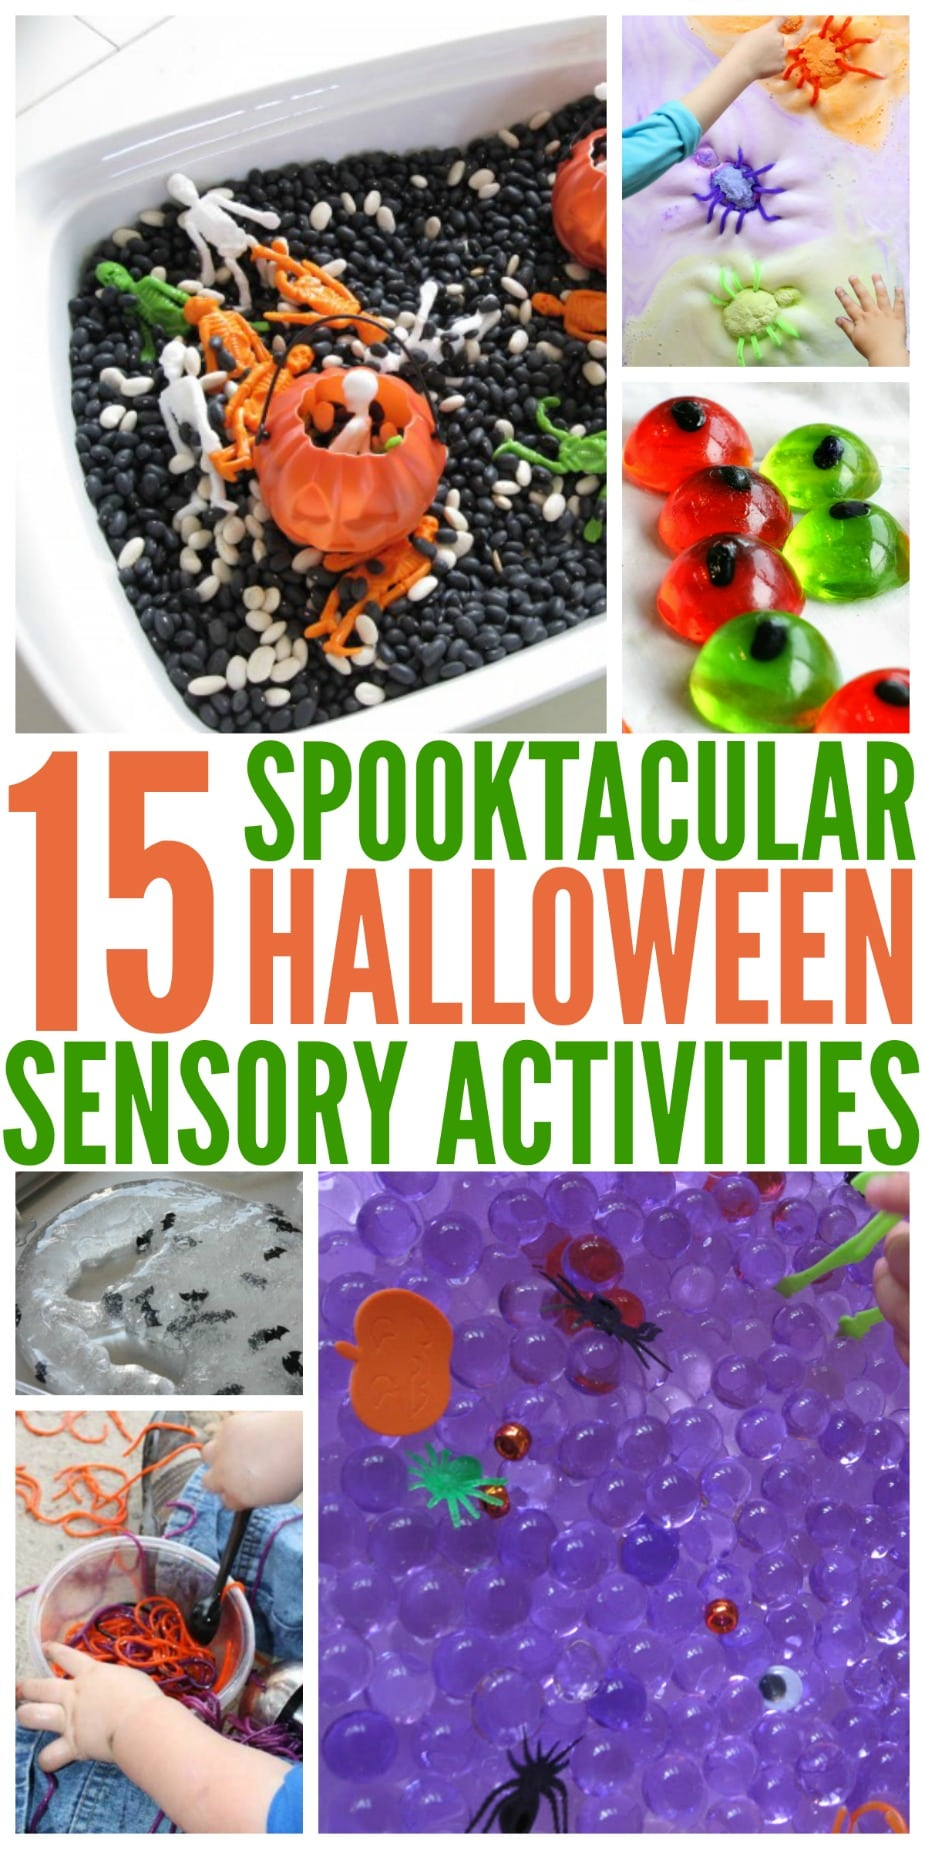 Halloween Sensory Activities for Kids - Simply Today Life